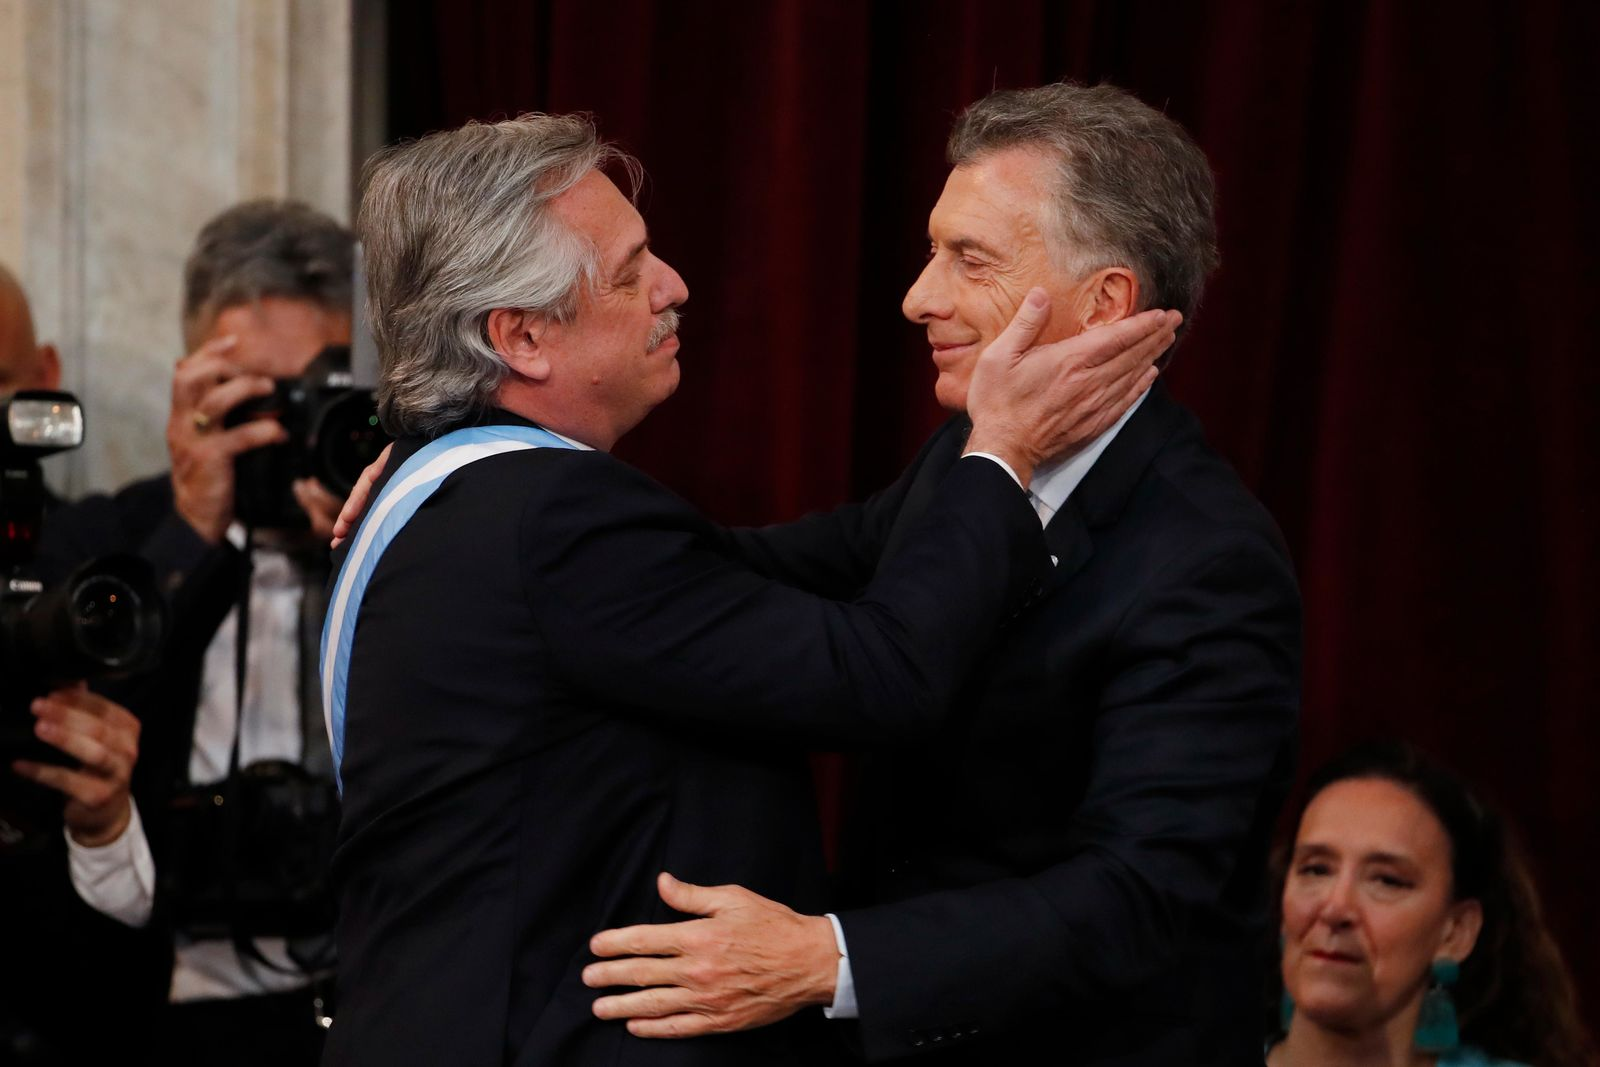 Argentina's new President Alberto Fernandez, left, embraces outgoing president Mauricio Macri after taking the oath of office at the Congress in Buenos Aires, Argentina, Tuesday, Dec. 10, 2019. (AP Photo/Natacha Pisarenko)